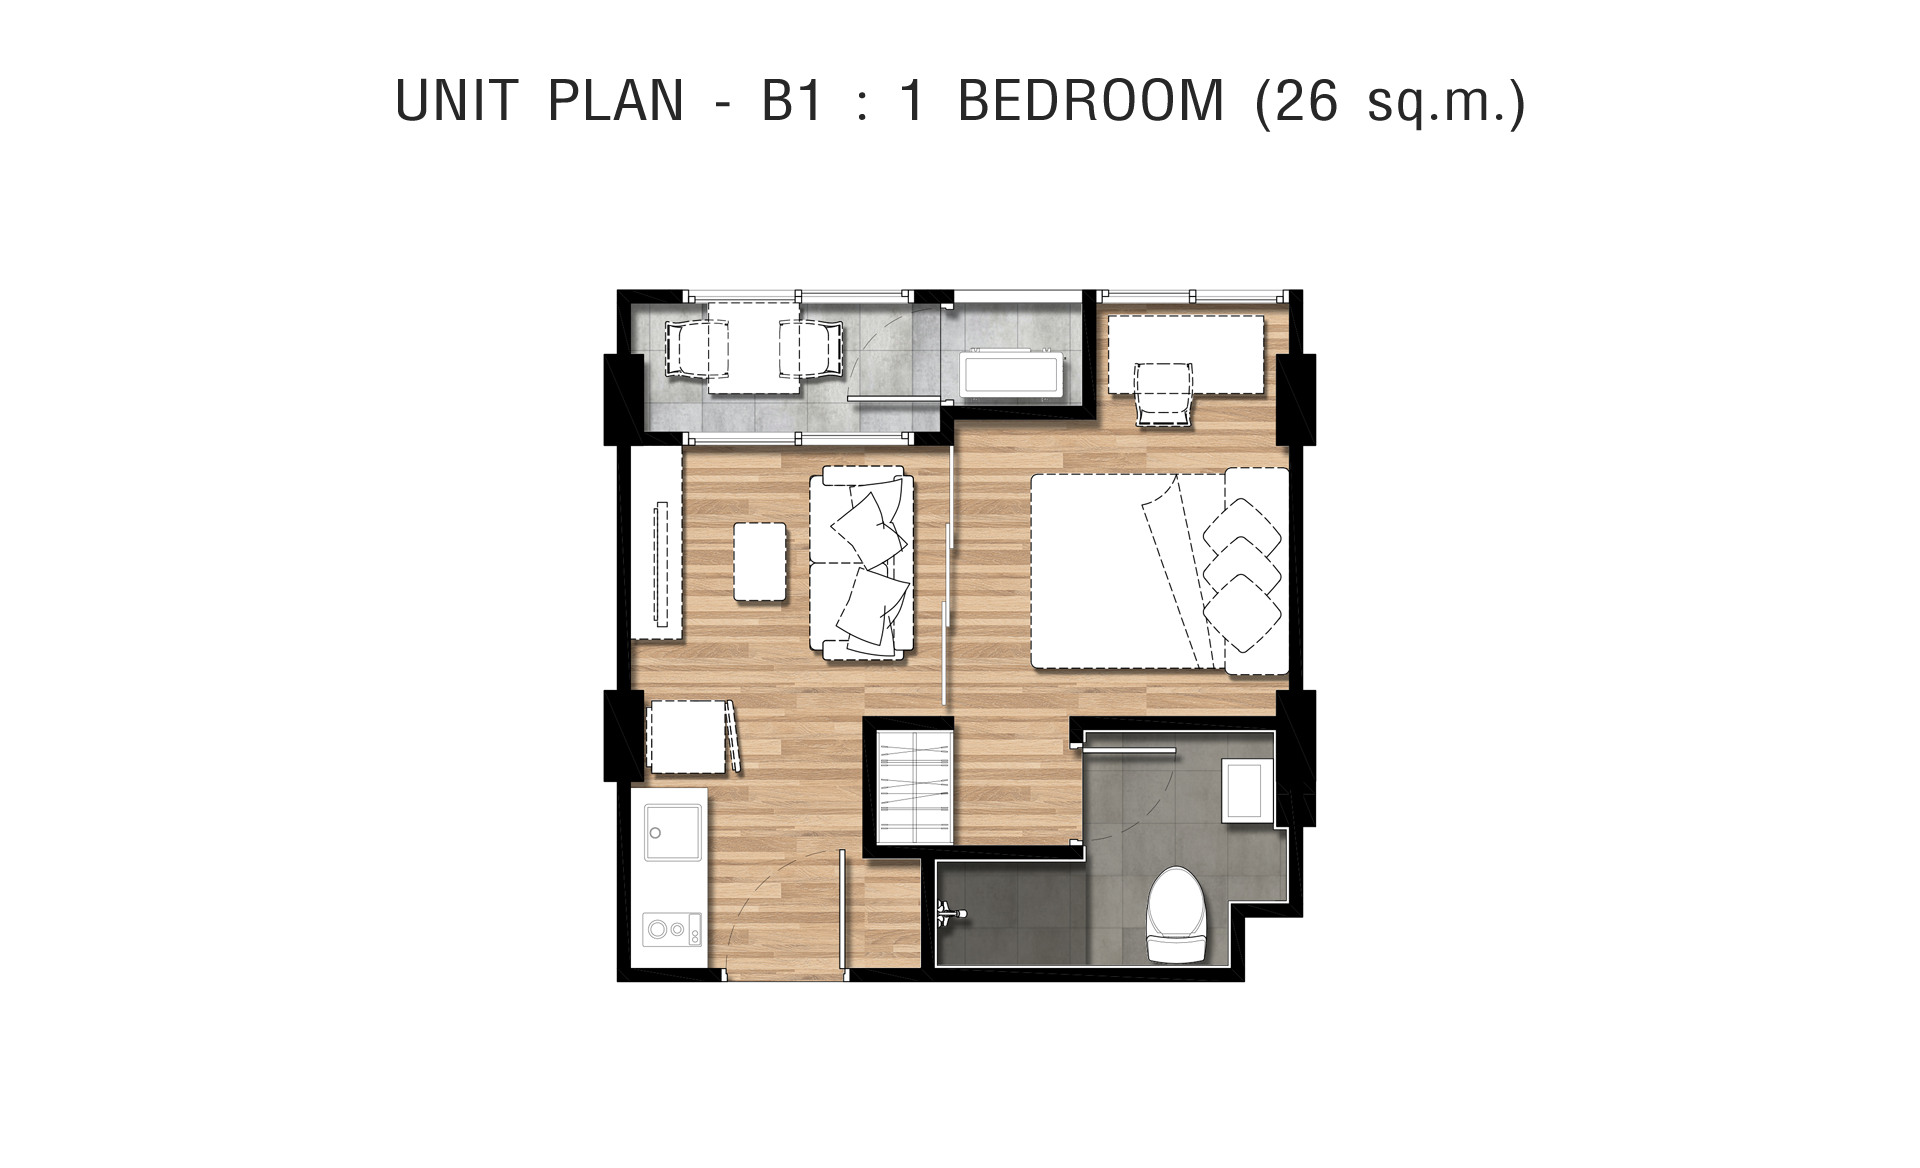 UNIT PLAN - TYPE B1